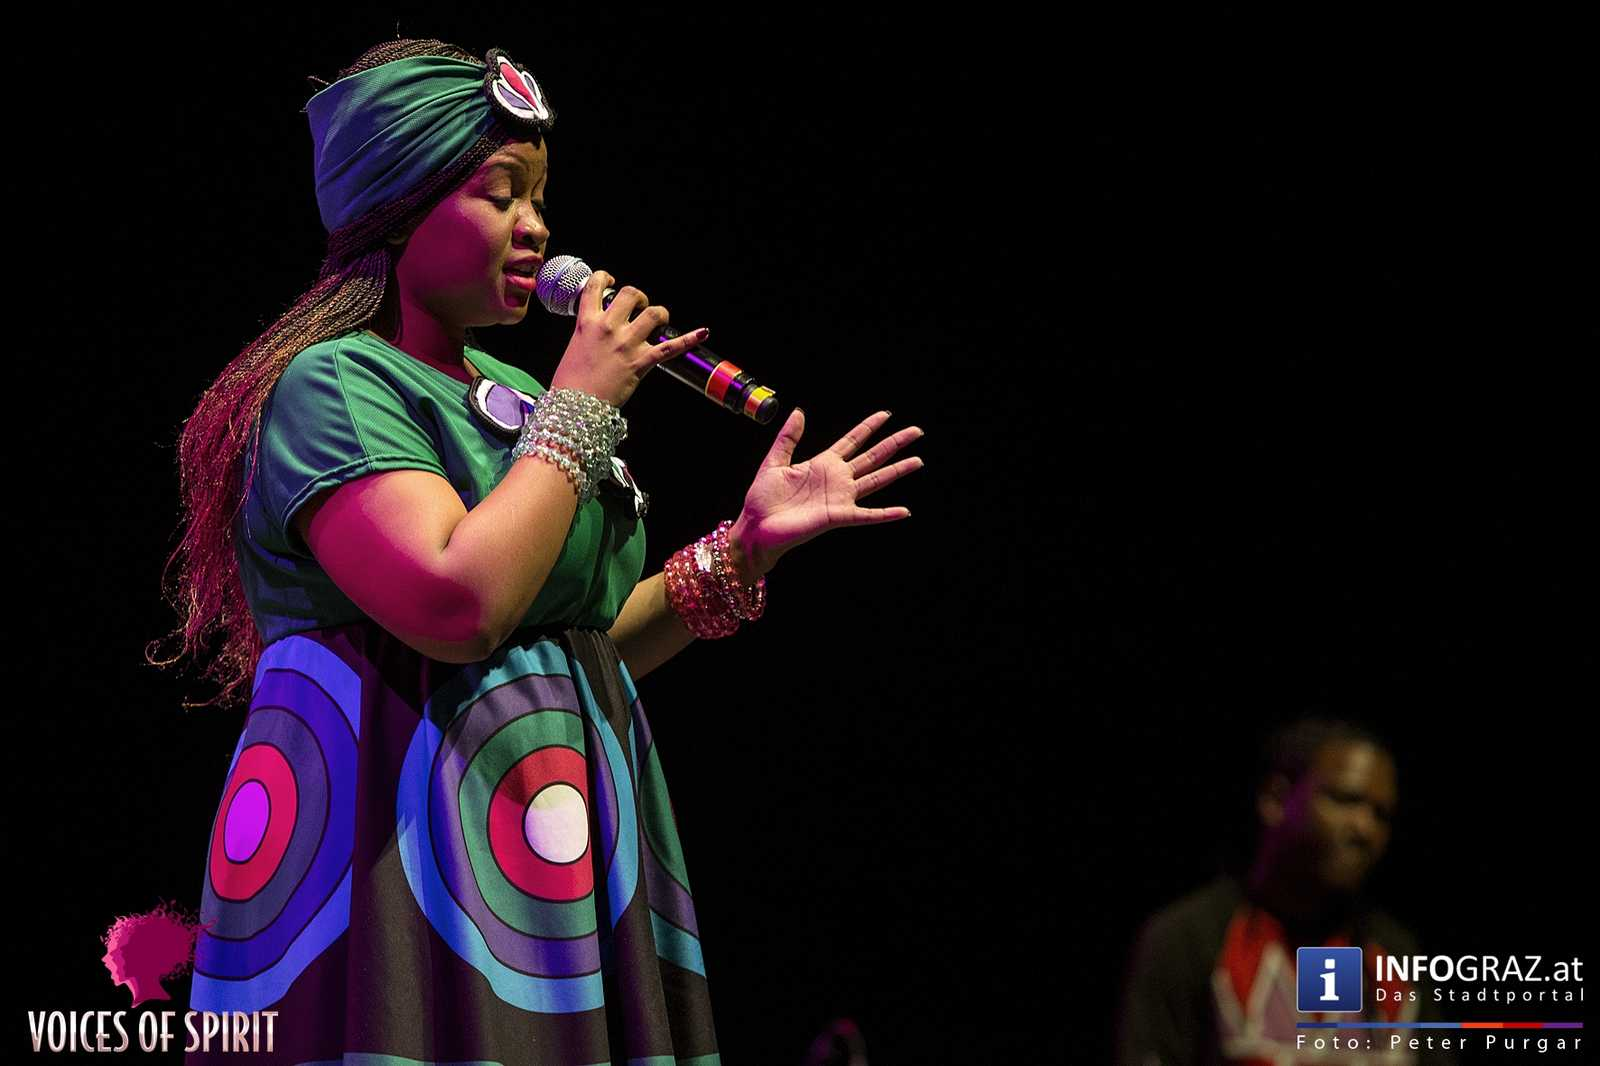 soweto gospel choir internationales chorfestival statdthalle graz voices of spirit eroeffnung festivals 2016 035